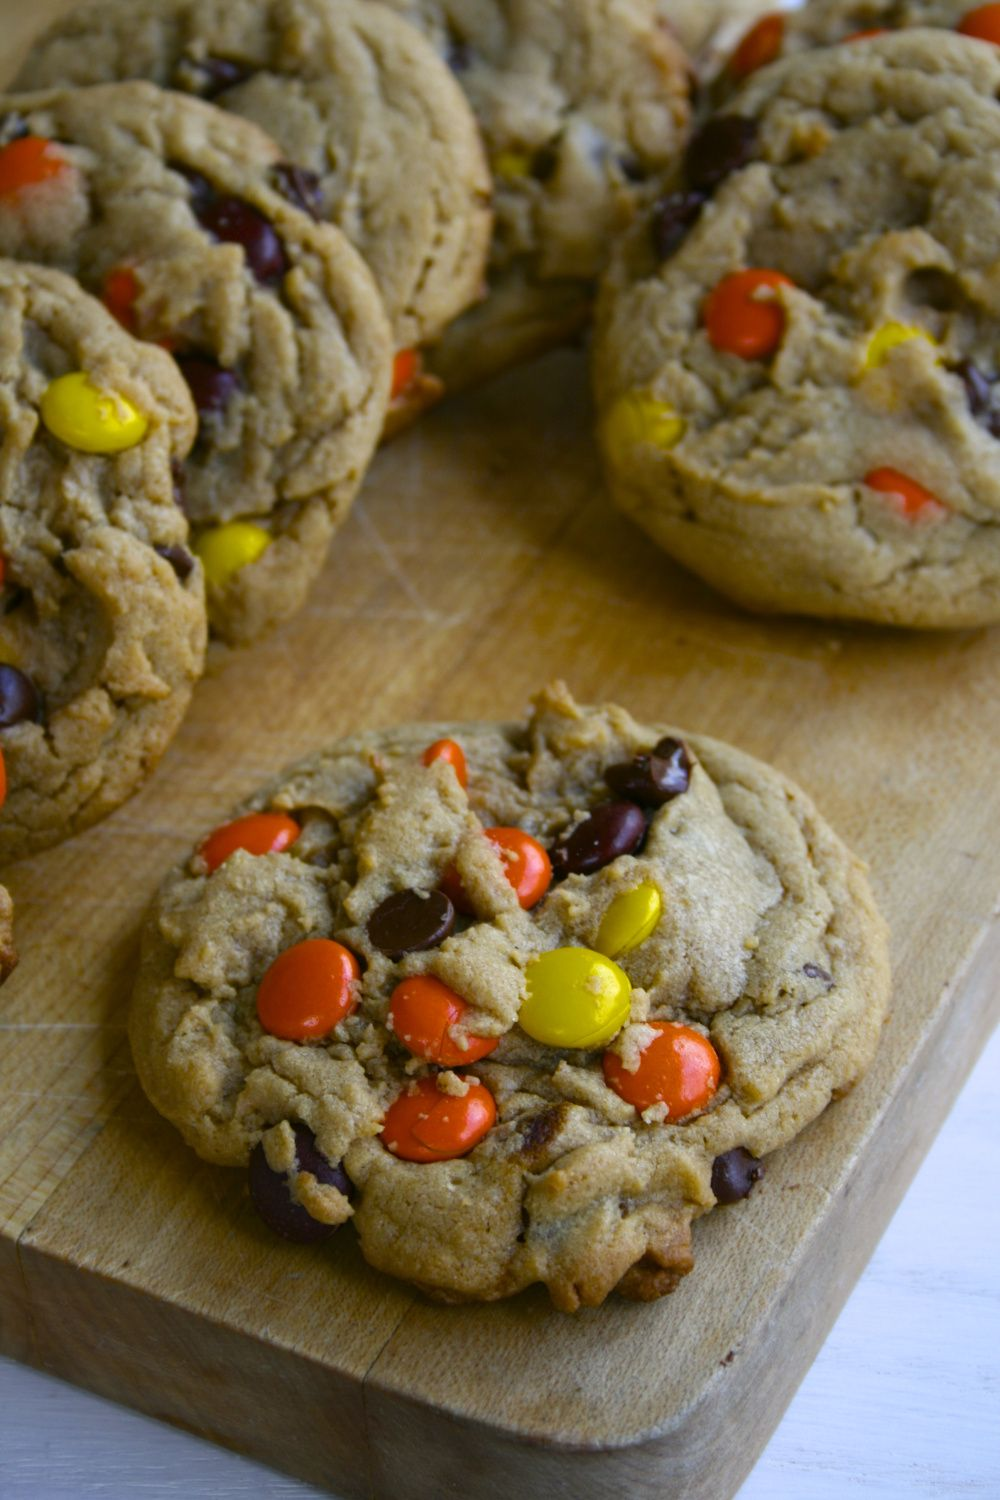 Peanut butter chocolate chip reeces pieces cookies